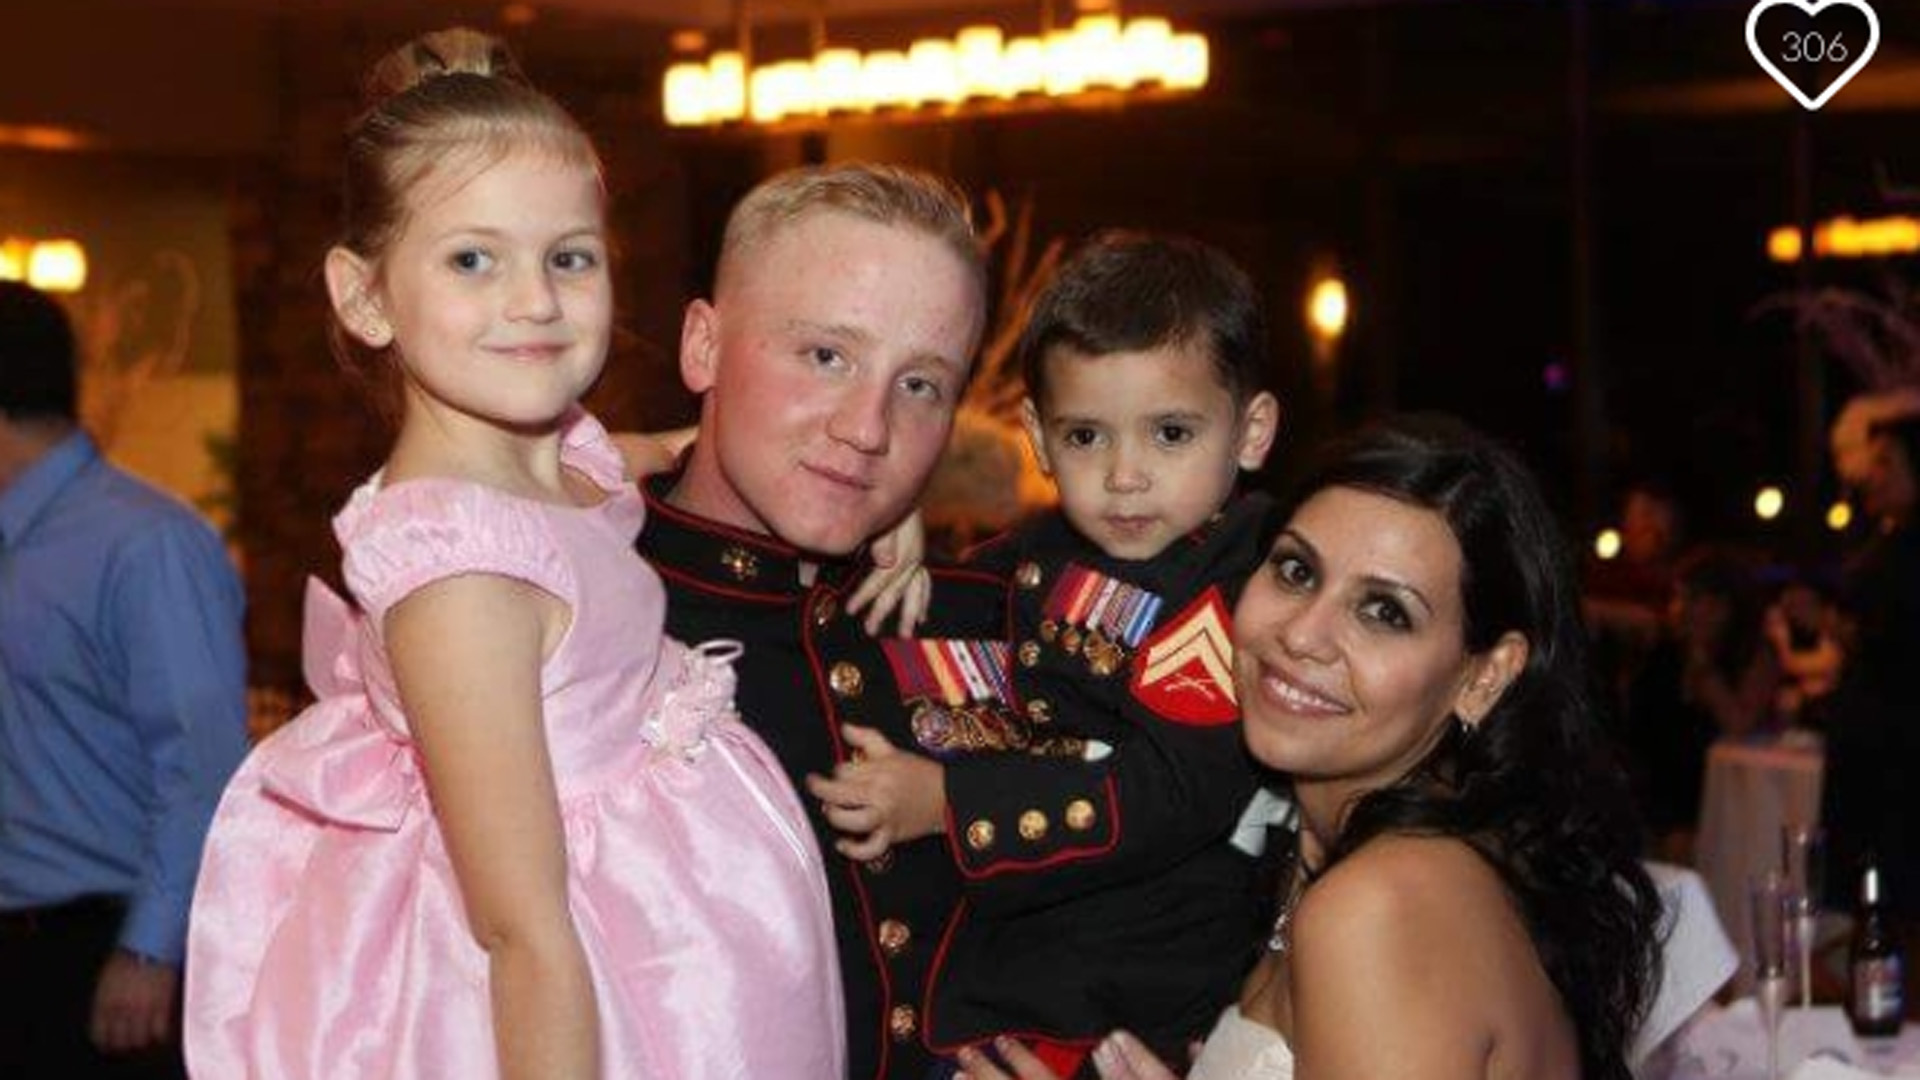 Officer Doe is shown with his family in a photo posted to a GoFundMe page.